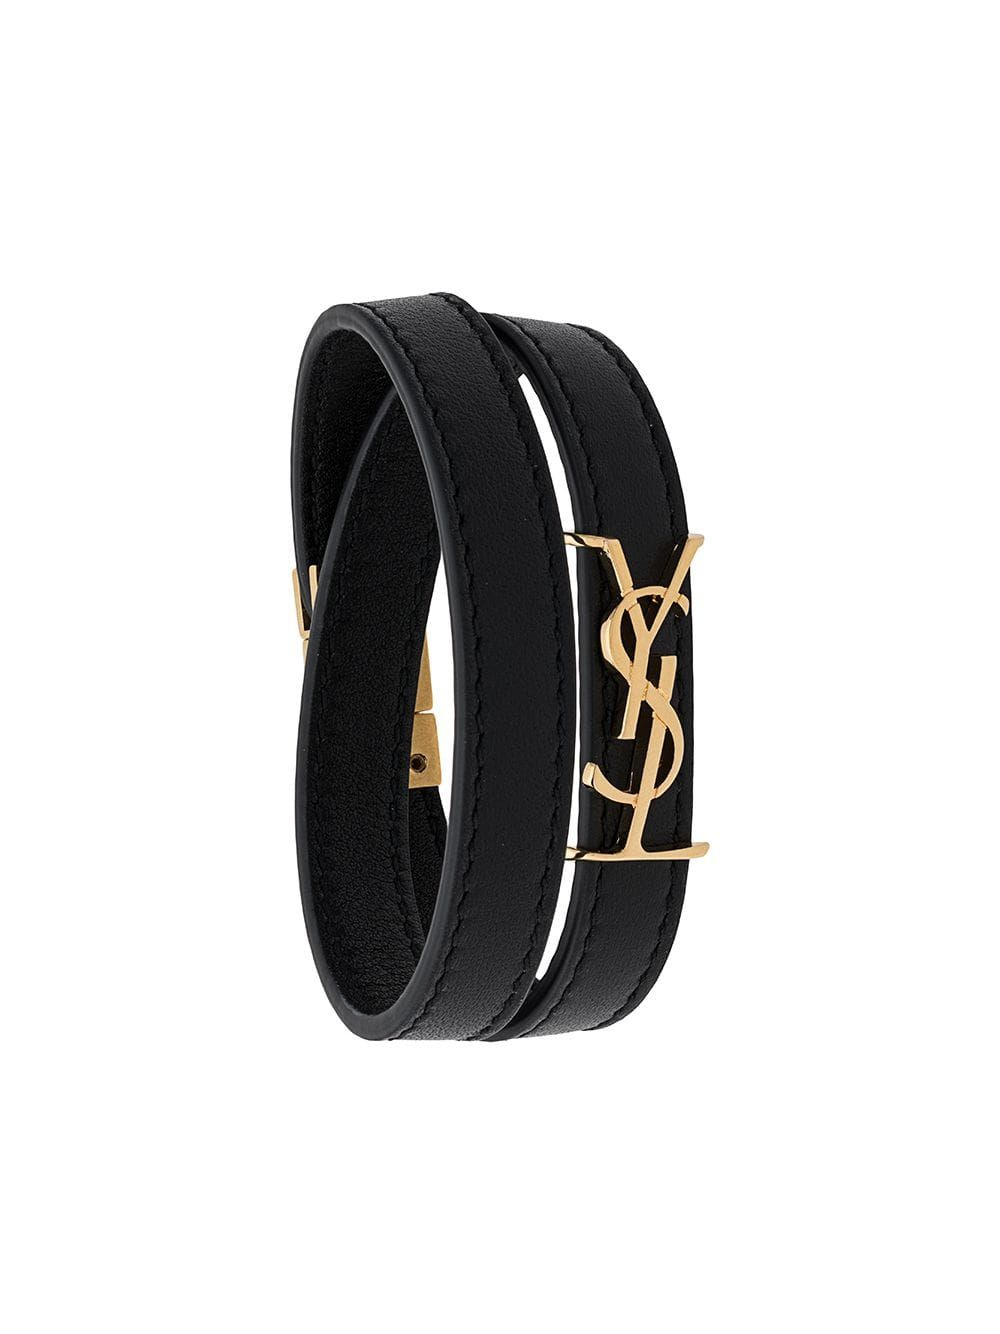 SAINT LAURENT logo plaque wrap around bracelet